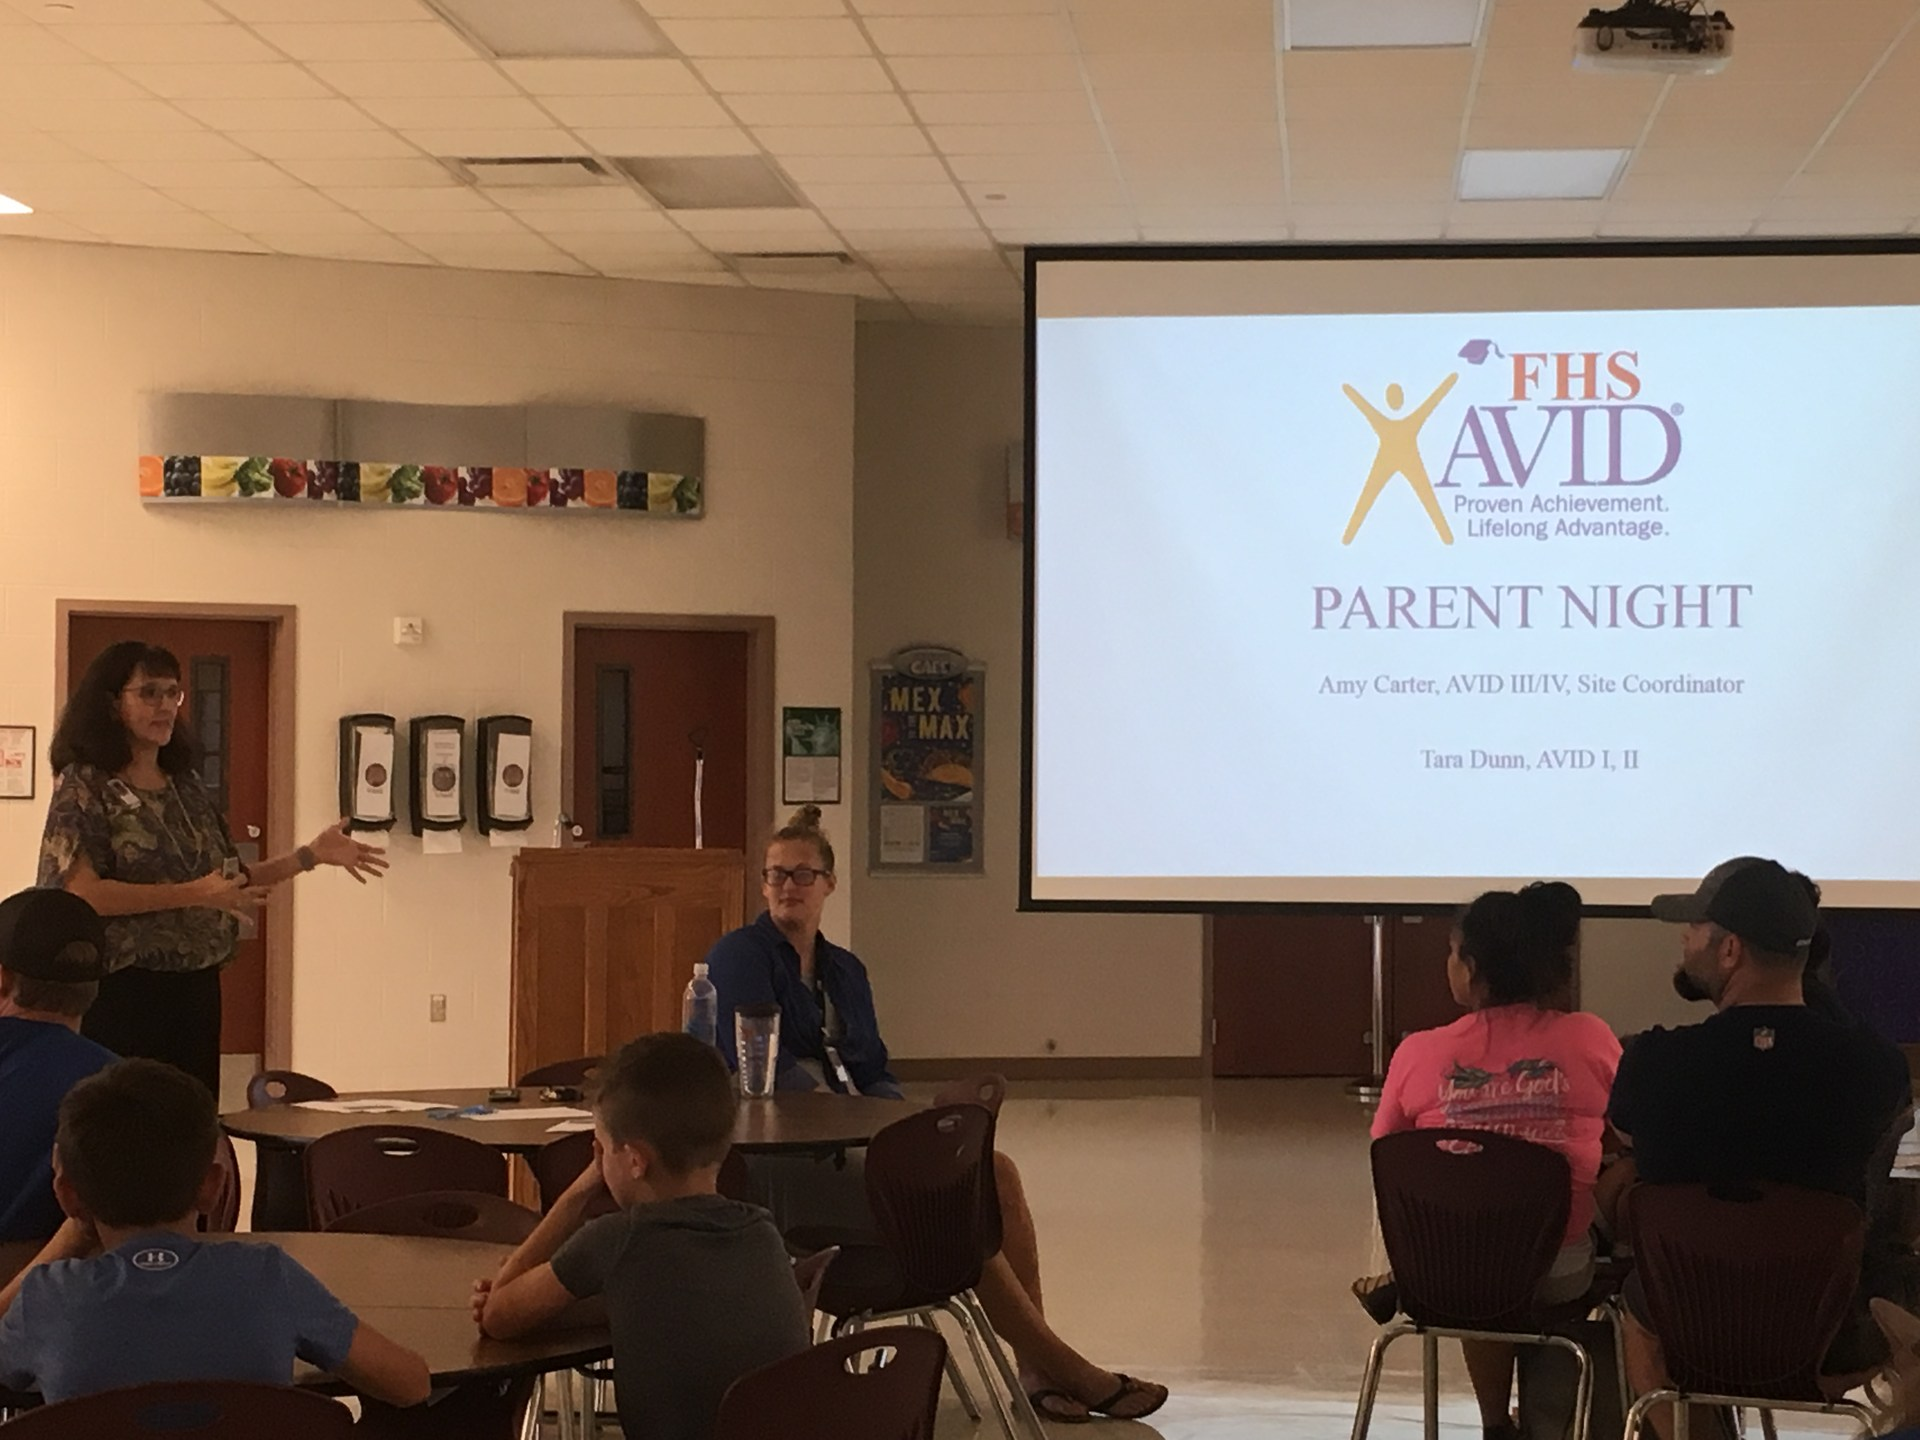 FHS AVID Parent Night